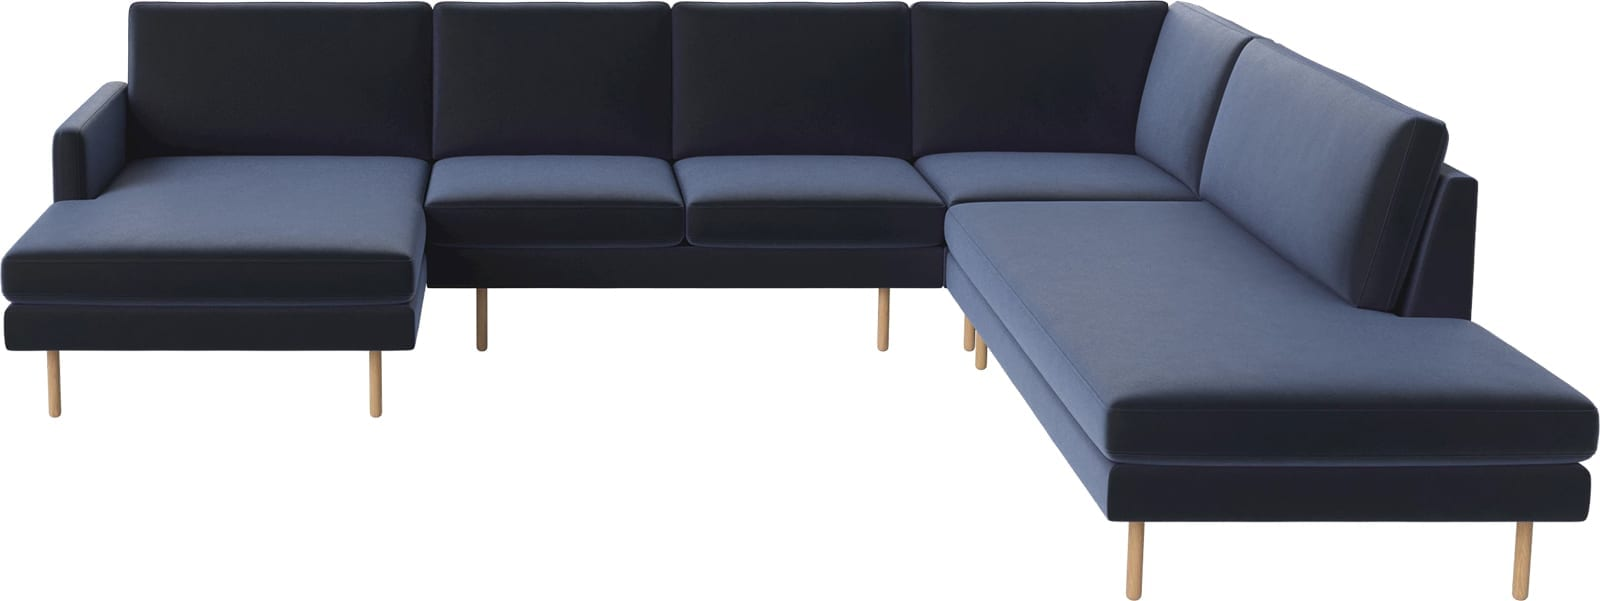 SCANDINAVIA REMIX 5 seater cornersofa with chaise longue and open end